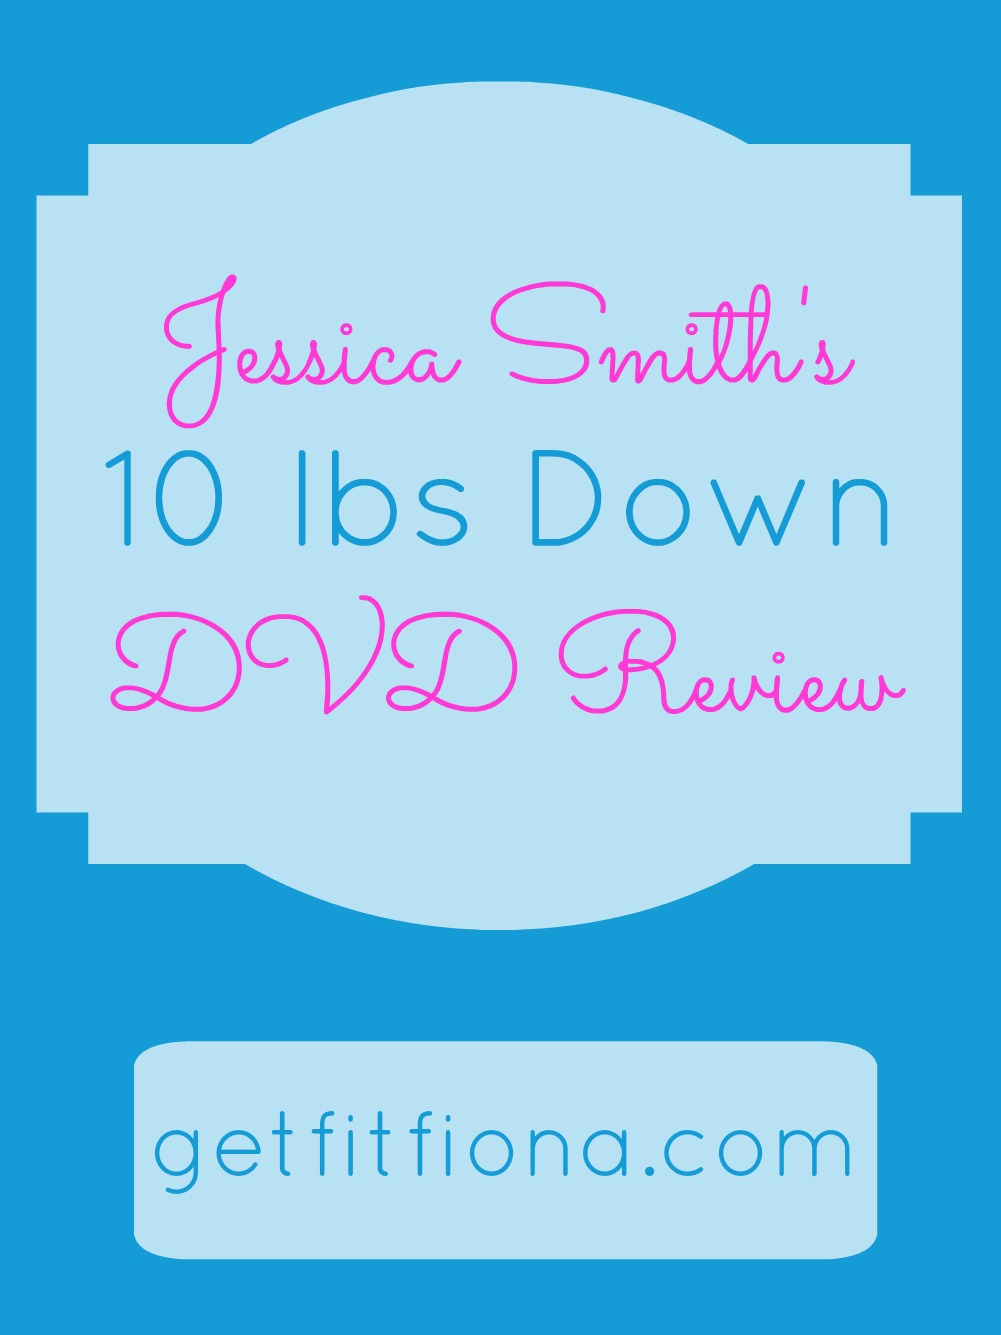 Jessica Smith's 10 lbs down DVD Review April 7 2015